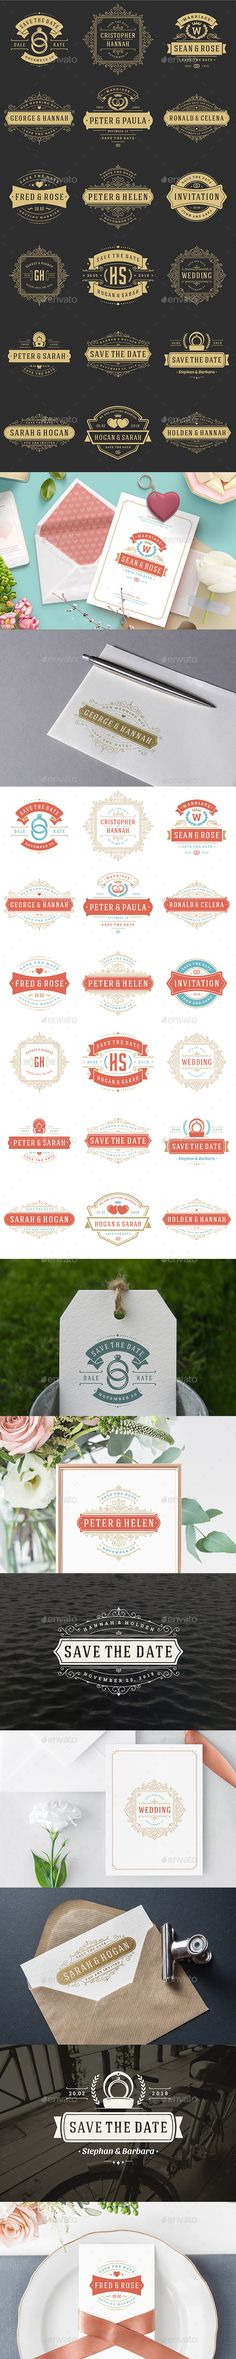 18 Wedding Logos and Badges — Photoshop PSD #floral #modern • Download ➝ https://graphicriver.net/item/18-wedding-logos-and-badges/21669404?ref=pxcr